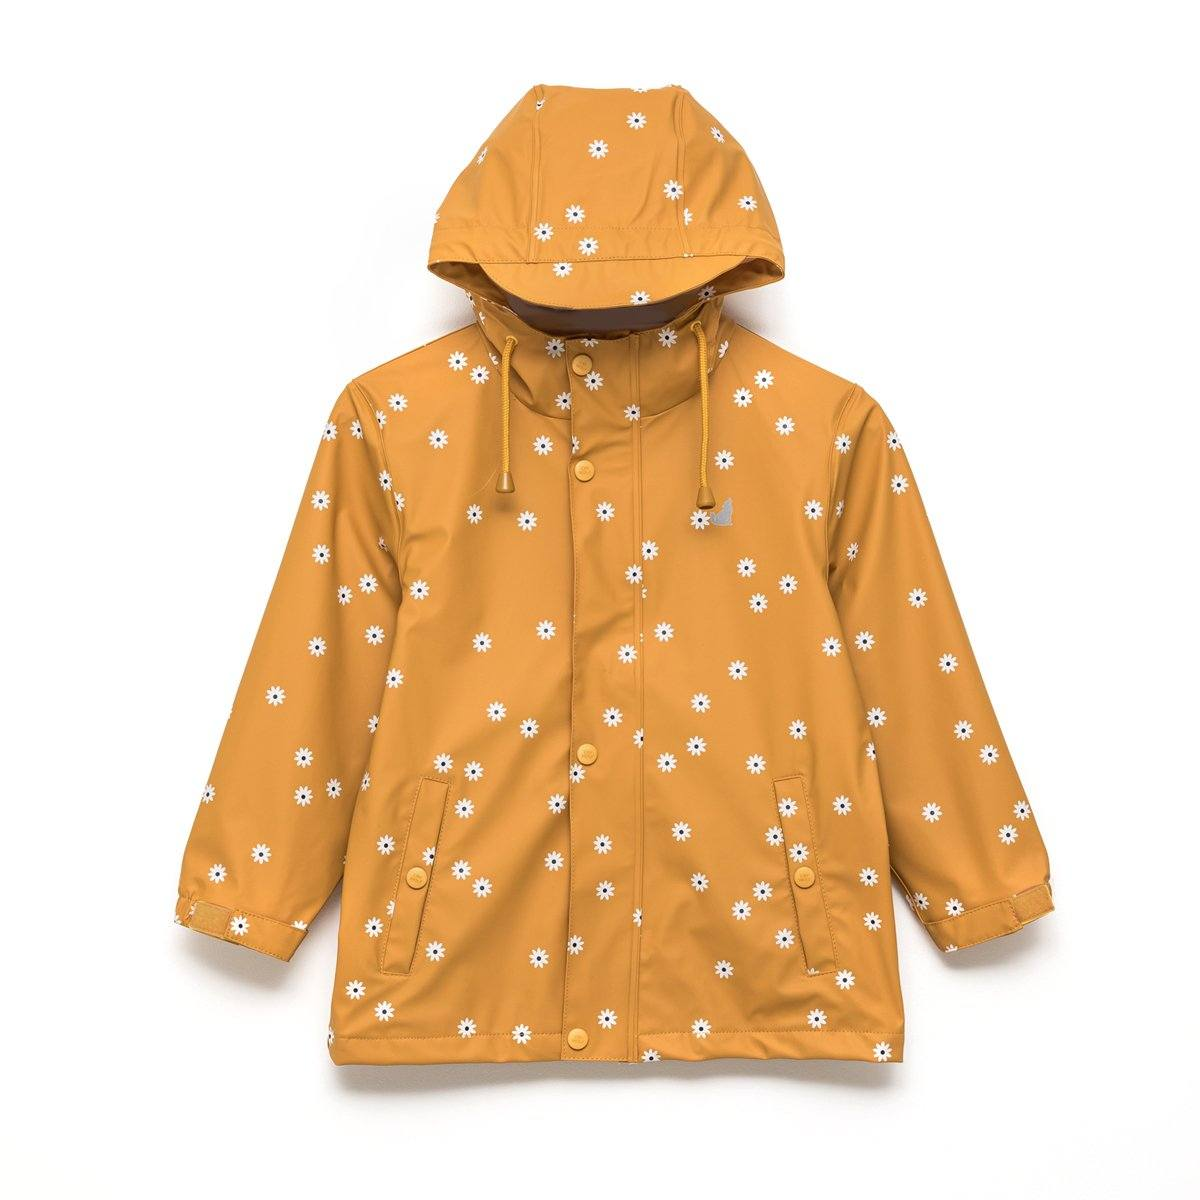 Play Jacket (Wild Flower)